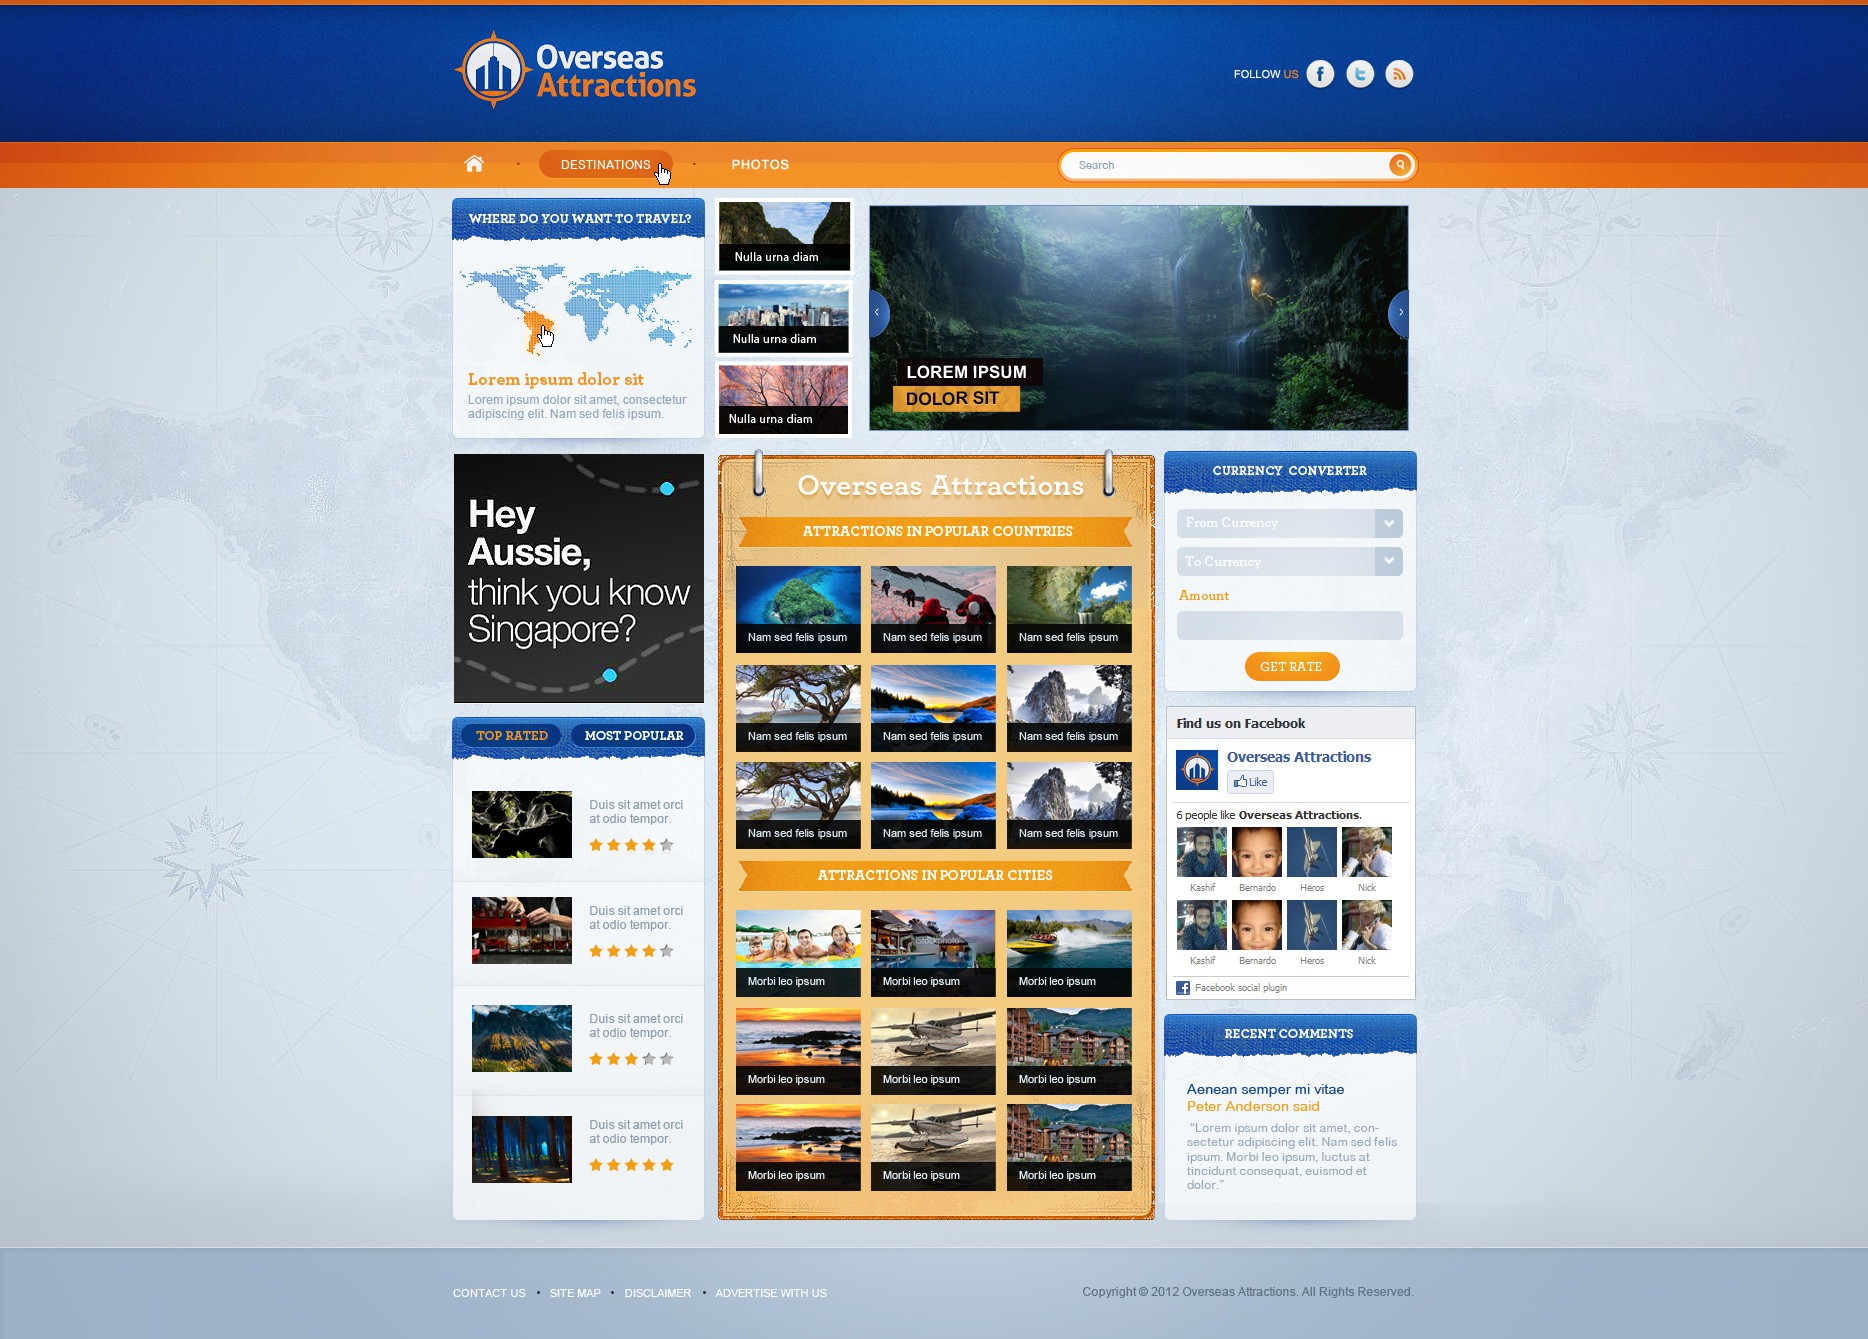 Make Overseas Attractions the best designed website ever!